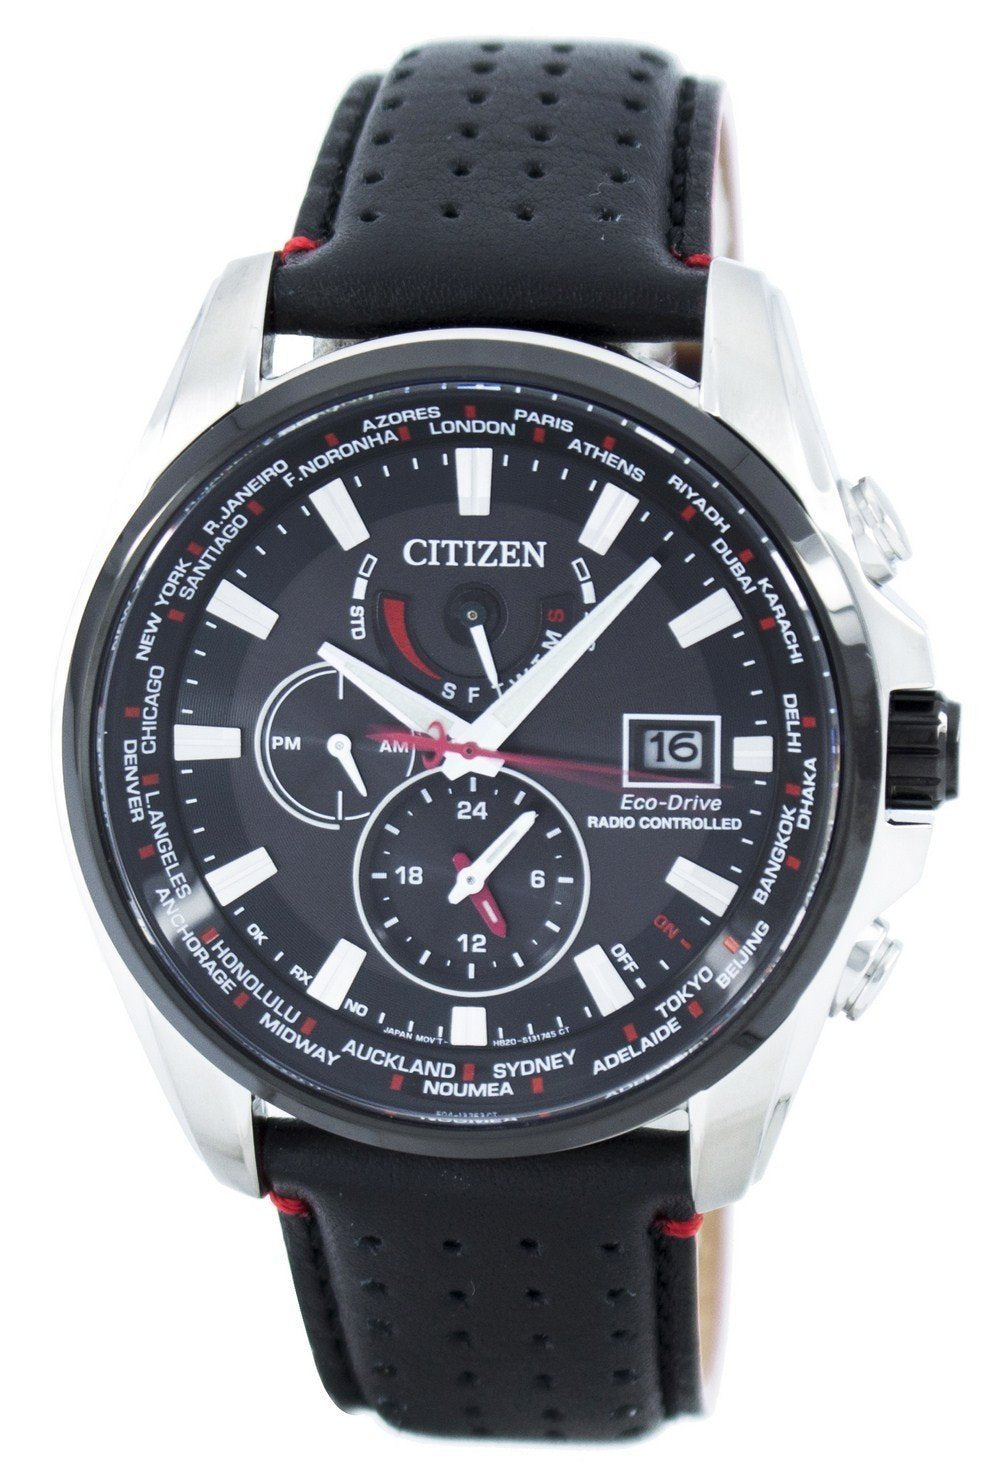 Citizen Eco-Drive Radio Controlled Chronograph World Time AT9036-08E Men's Watch